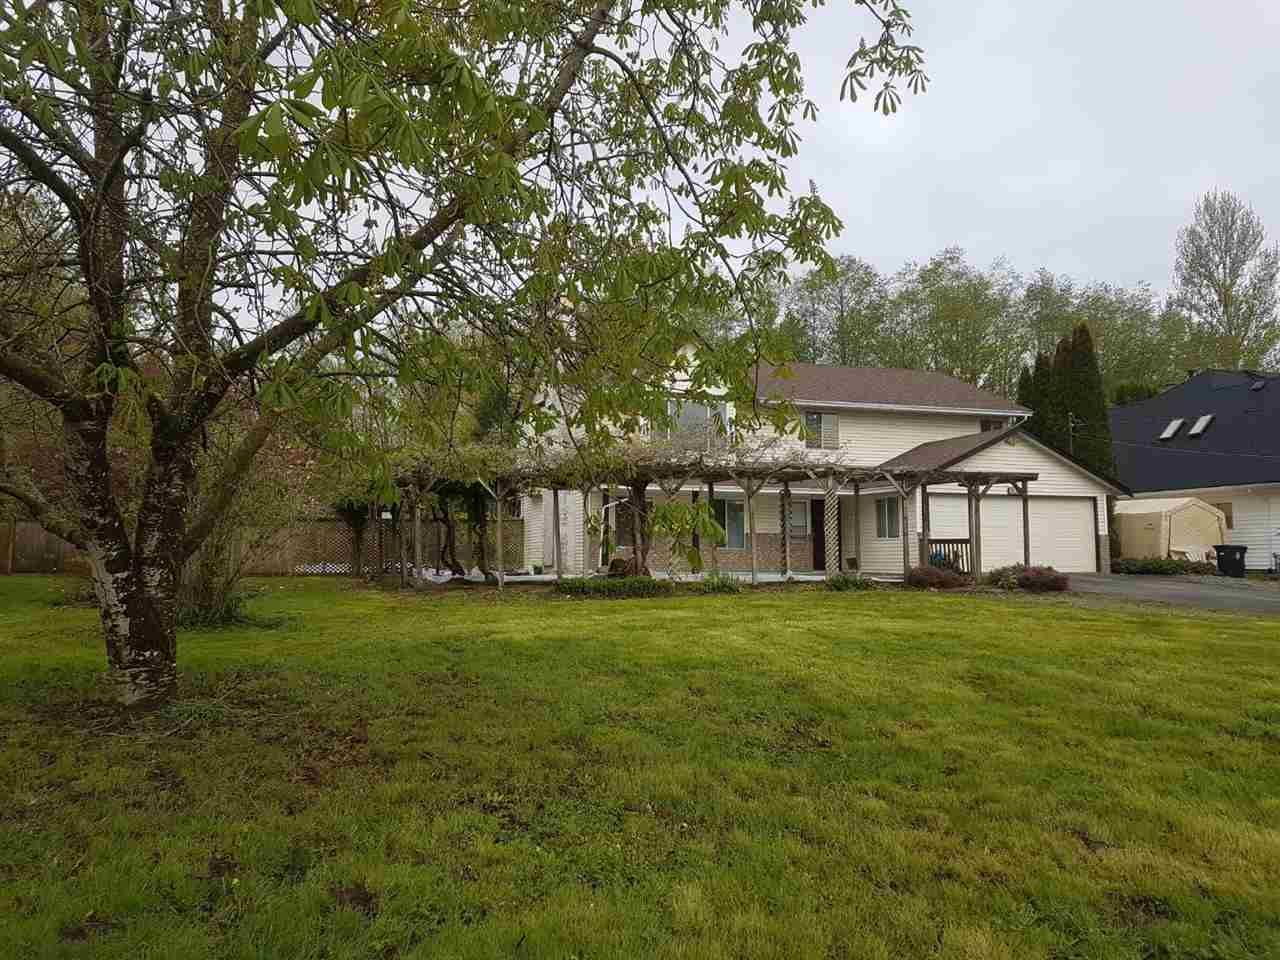 Main Photo: 6915 208 Street in Langley: Willoughby Heights House for sale : MLS®# R2447982